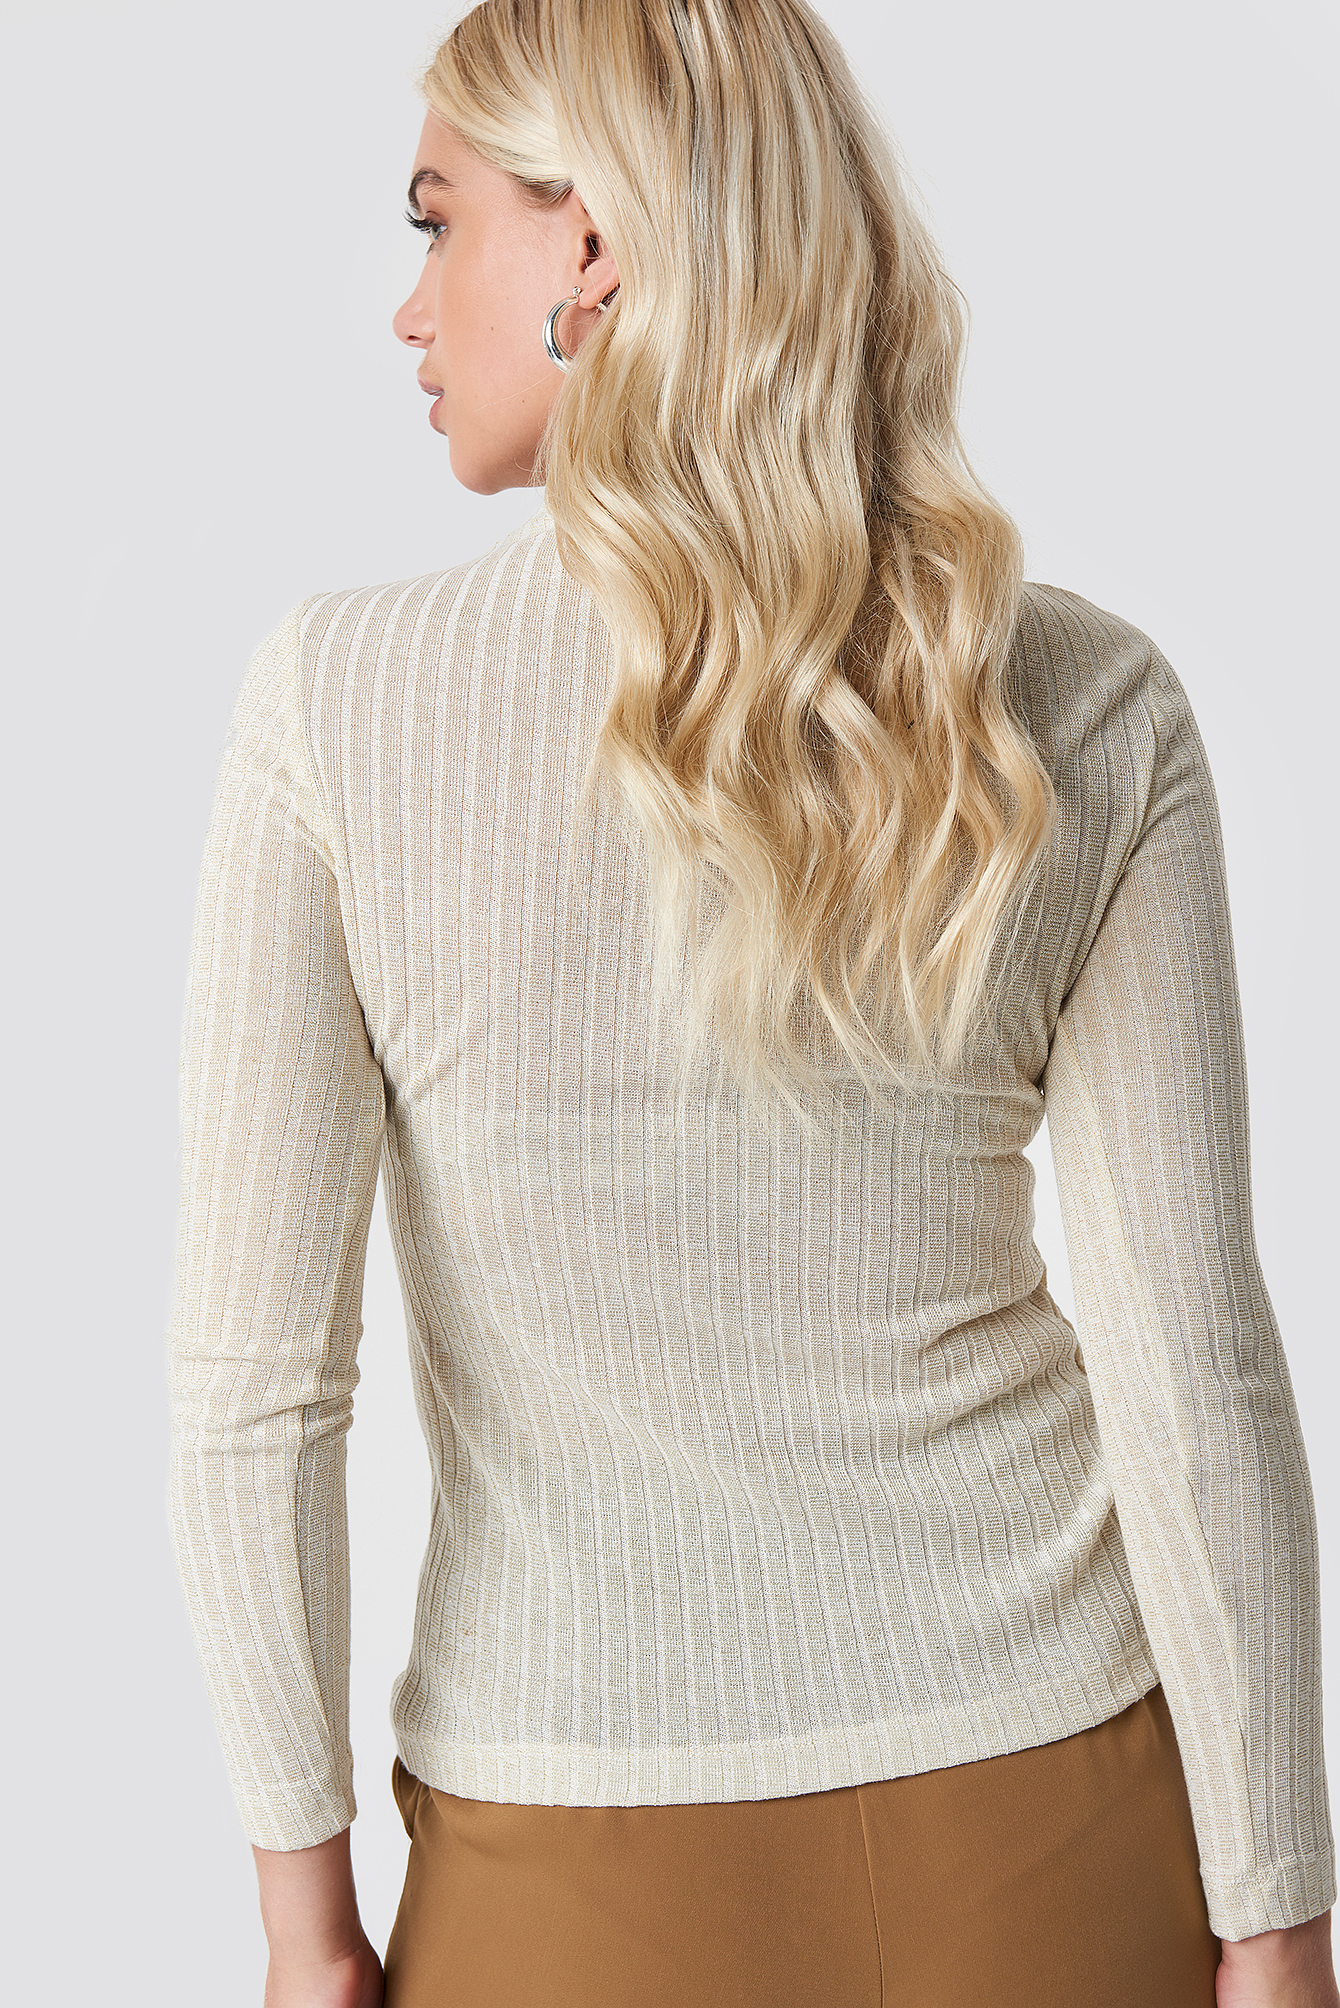 Shimmery Knitted Blouse NA-KD.COM